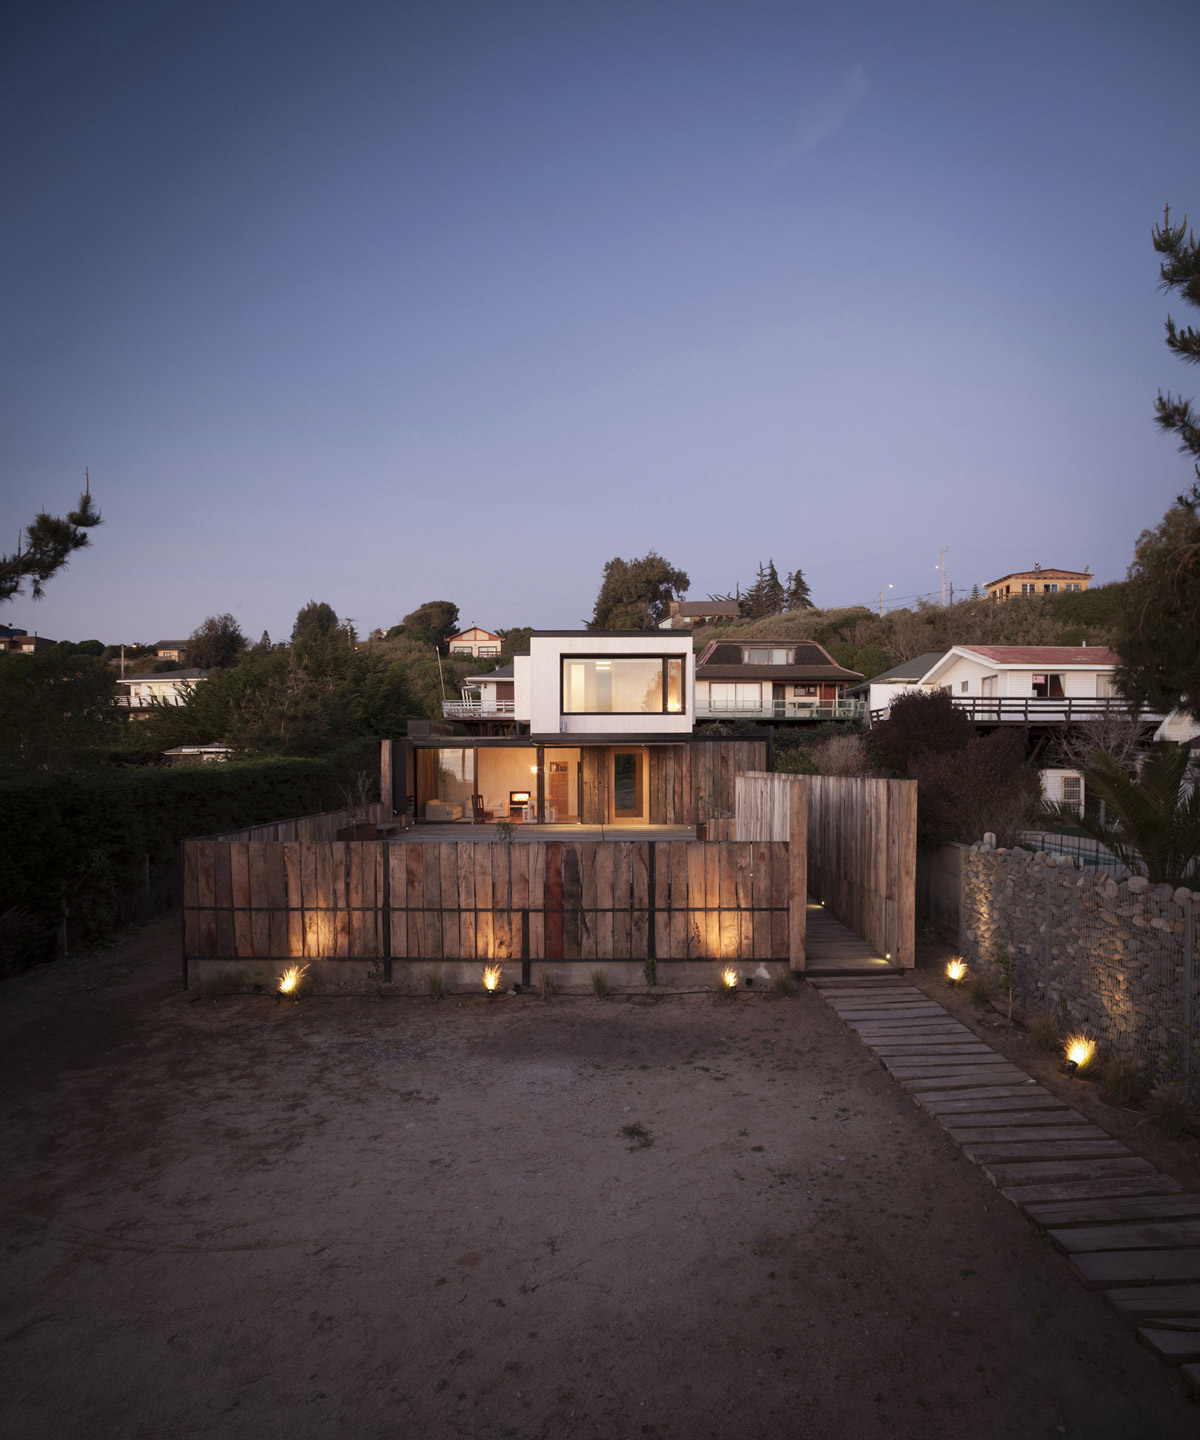 Wooden Fence, Pathway, Lighting, Family Home in Algarrobo, Chile